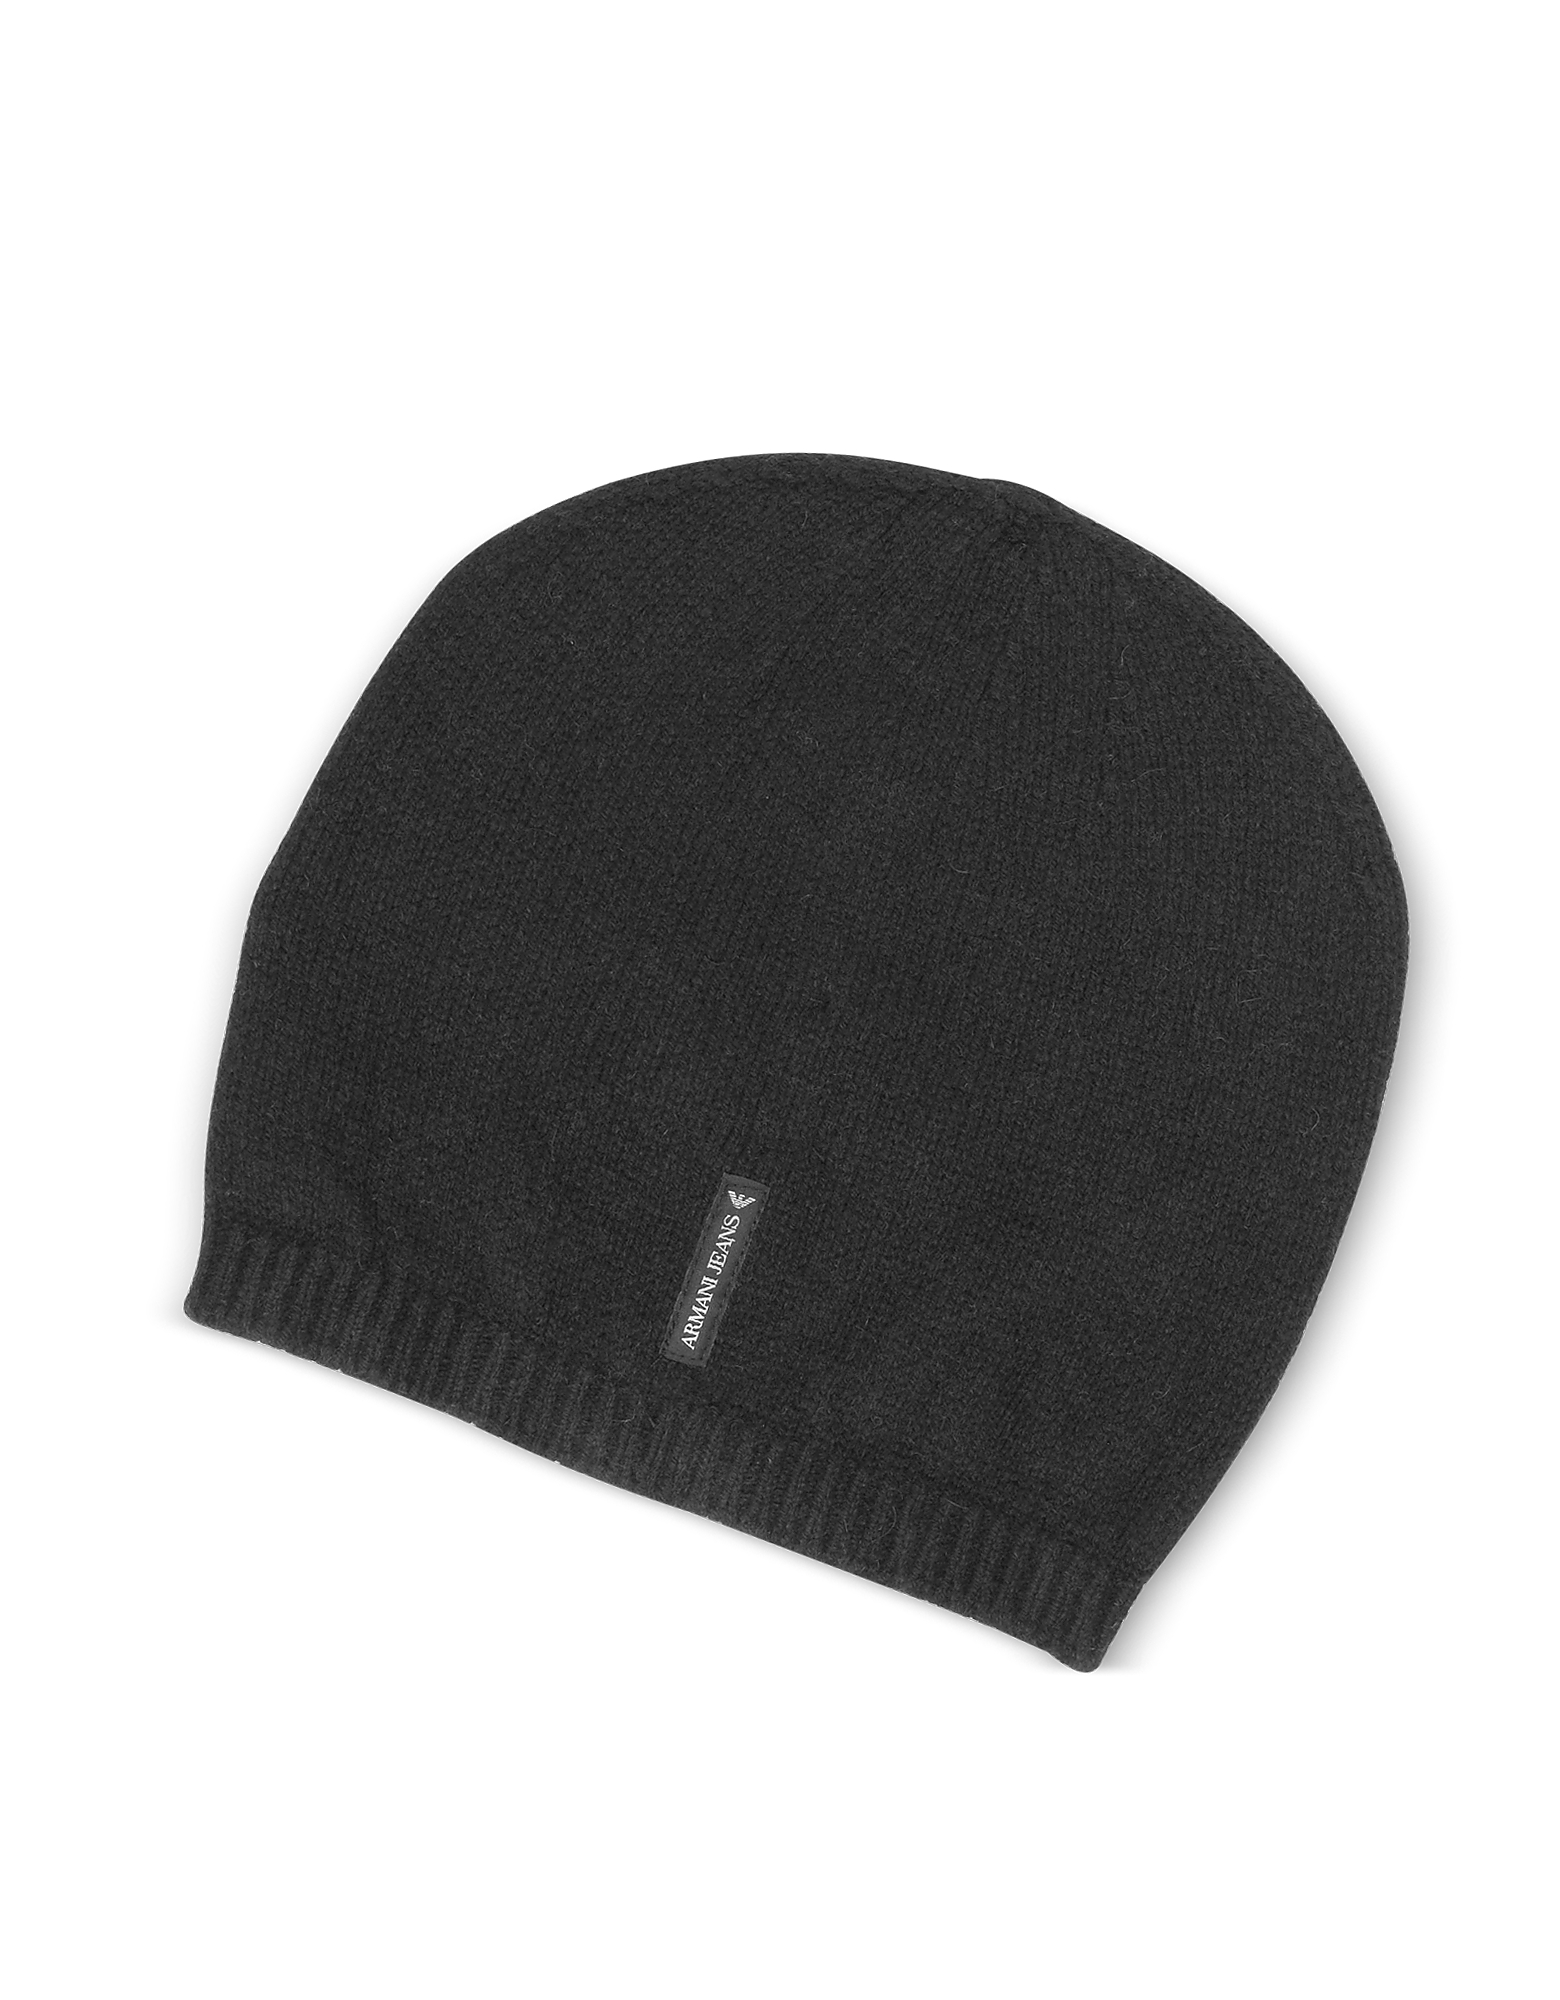 Solid Pure Cashmere Men's Beanie от Forzieri.com INT